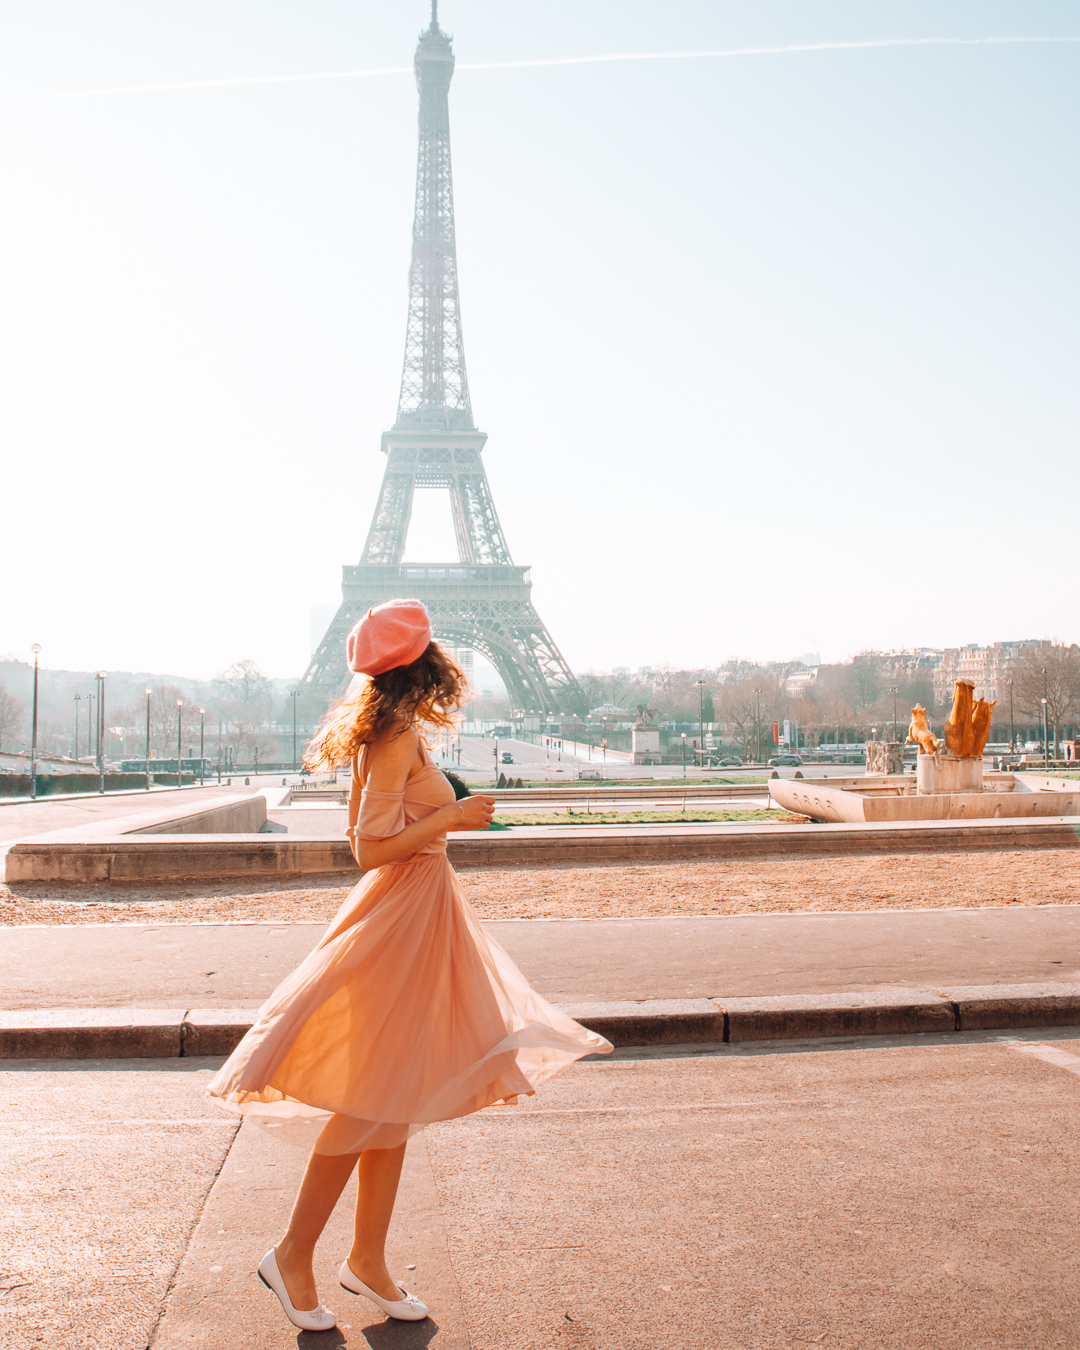 Girl with dress and the Eiffel Tower